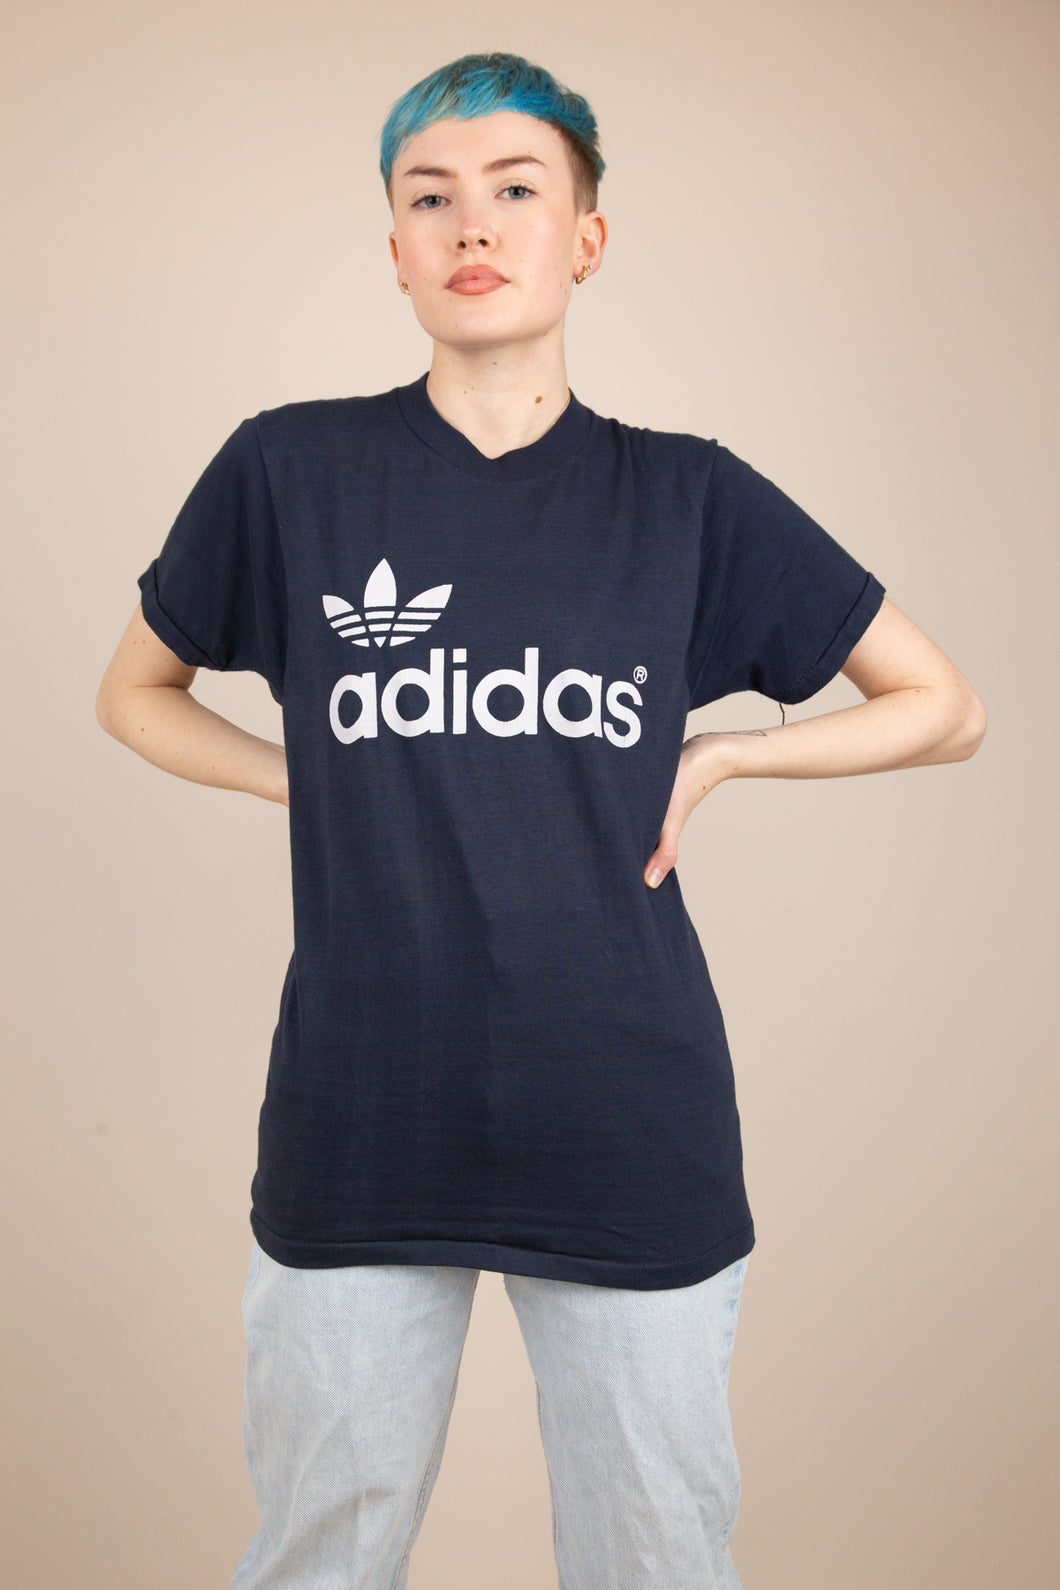 Model wearing Adidas Tee, buy now from magichollow